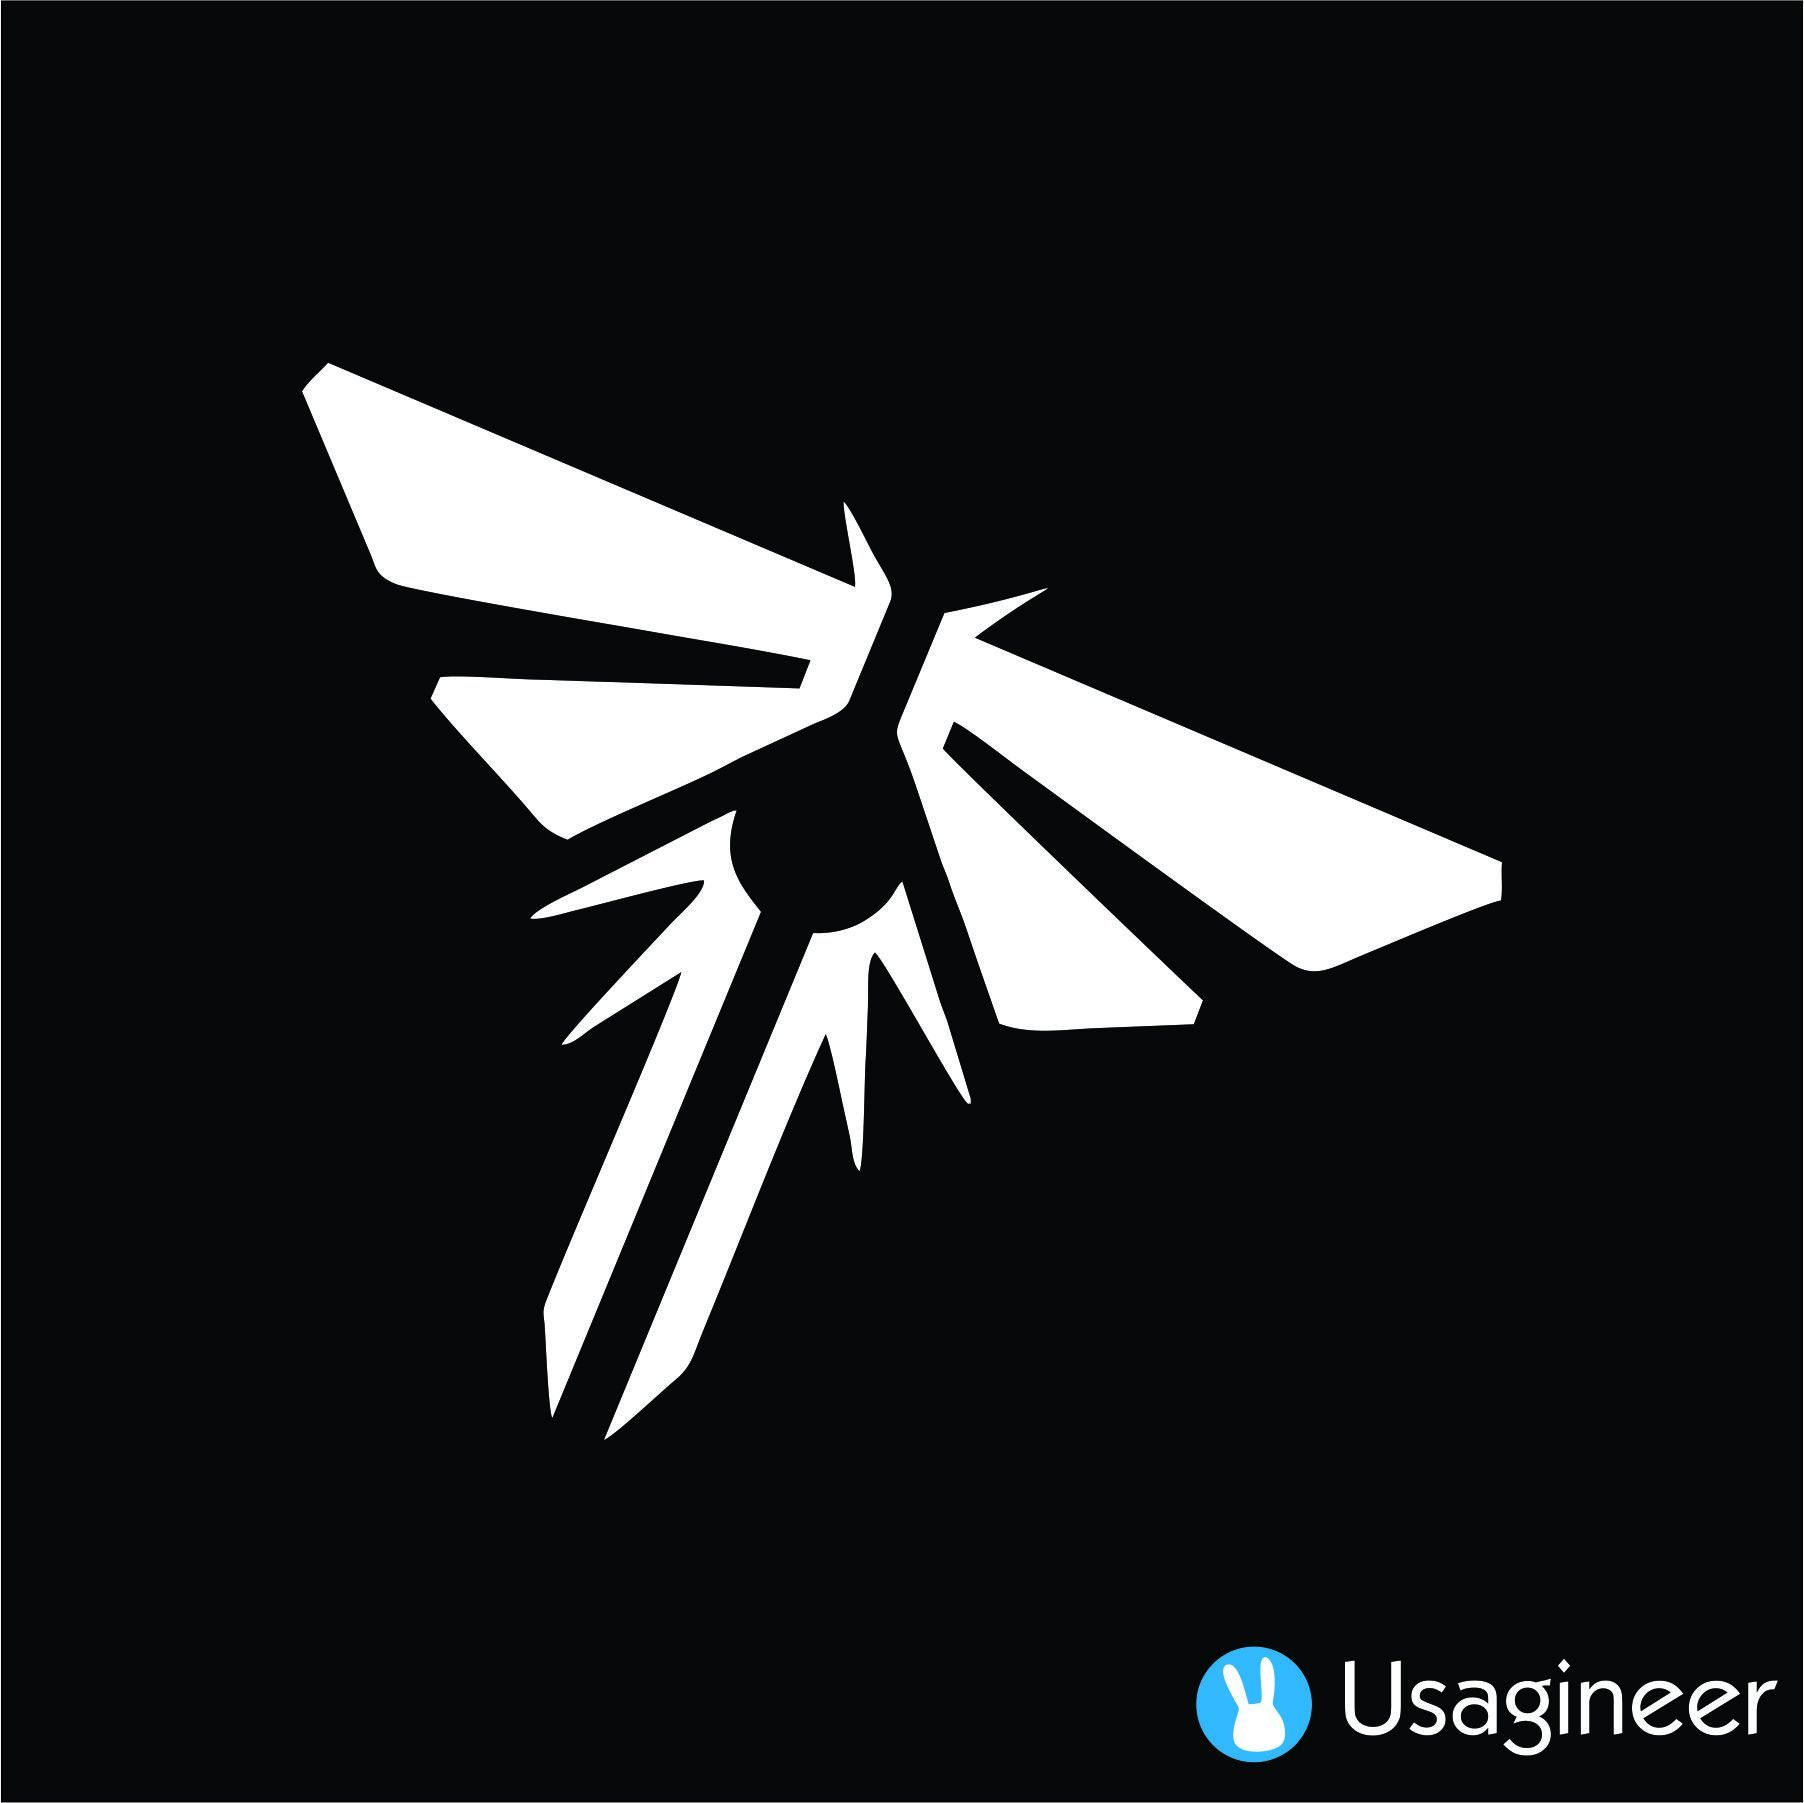 The Last Of Us Firefly Anime Decal Sticker Tattoo Fireflies Anime Logos Decals